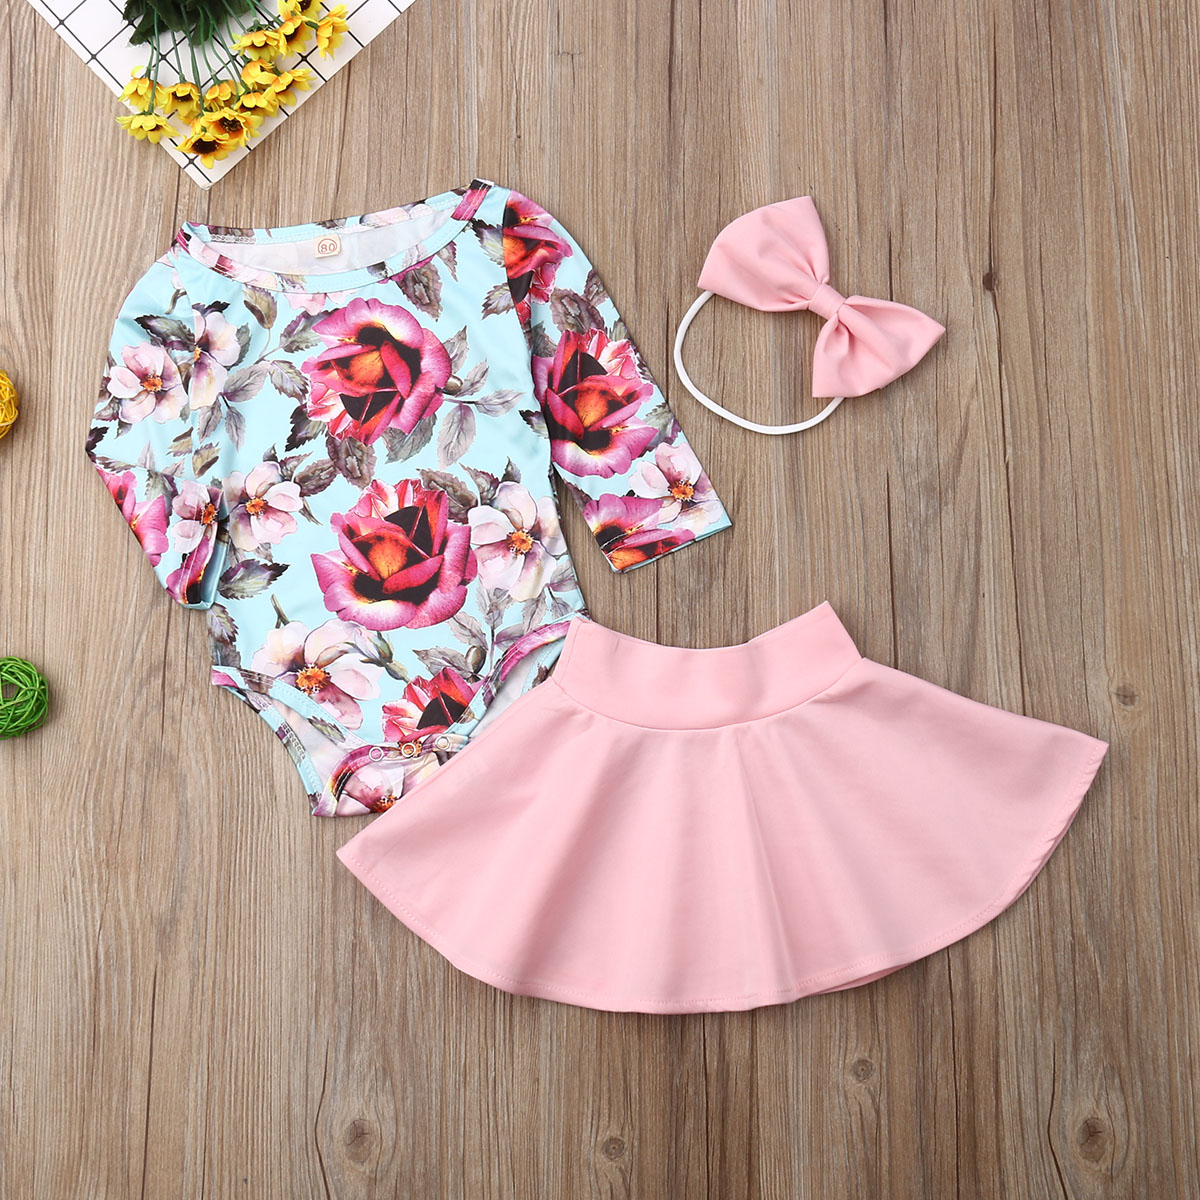 Canis Summer Toddler Kid Baby Girl Floral Outfits Clothes Tops Long Pants 3Pcs